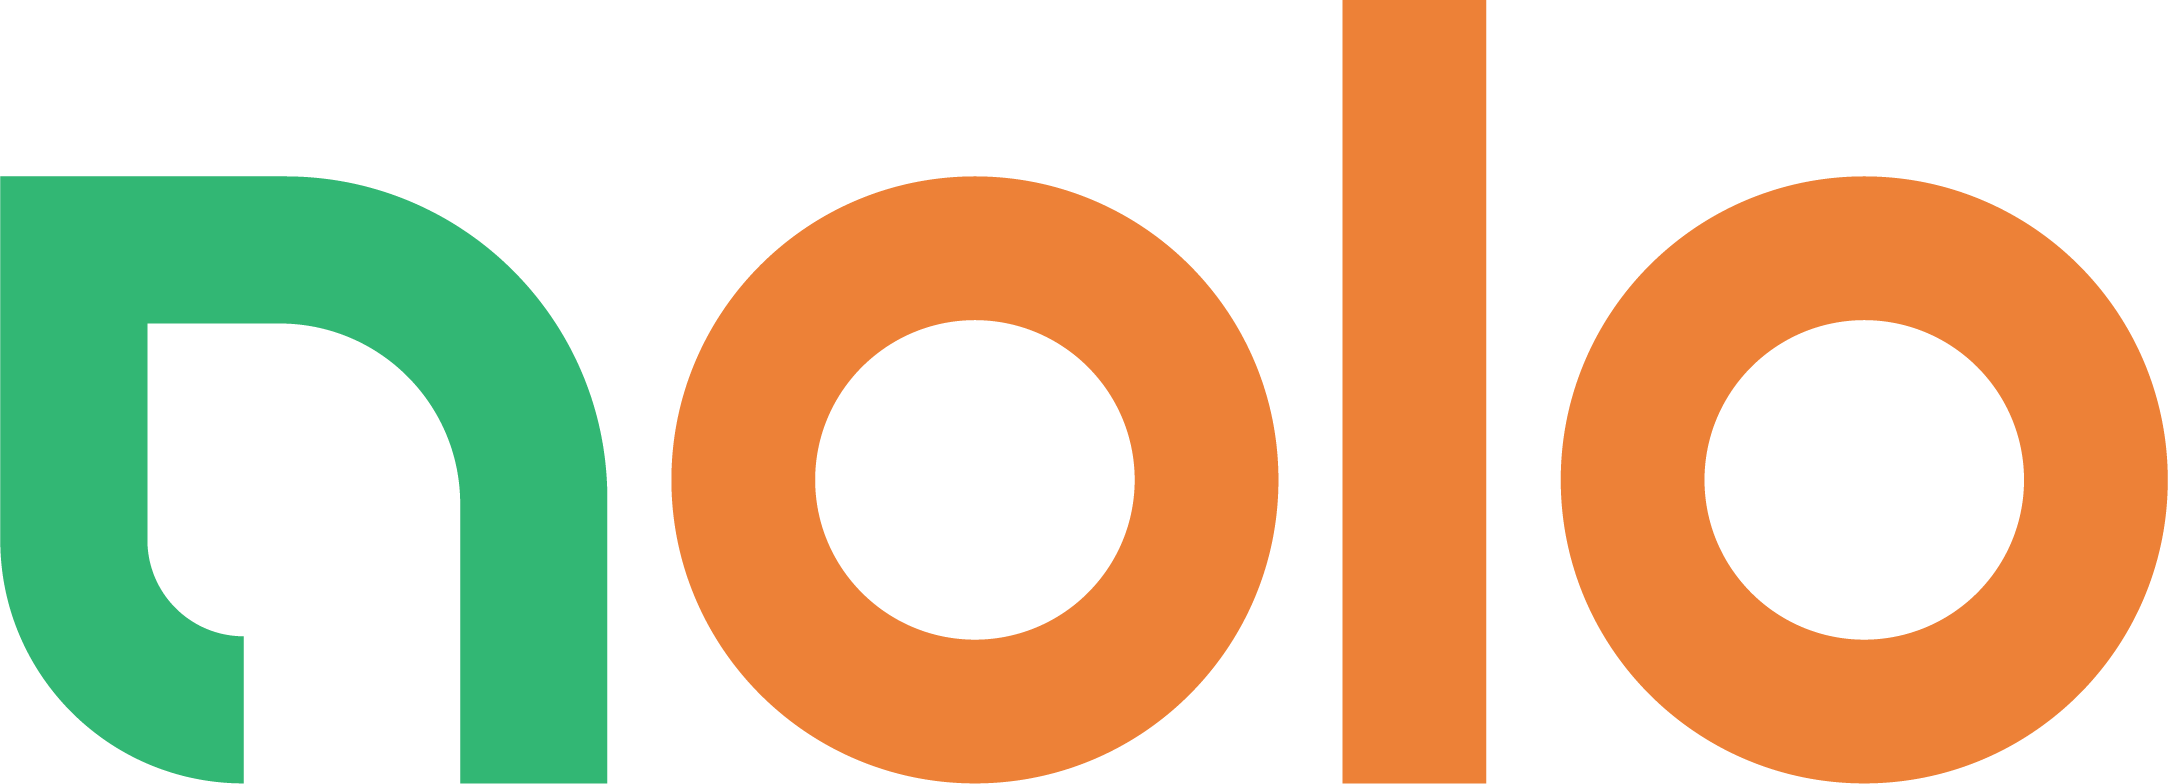 Logo for a pioneer Startup in Brazil for combating food waste.